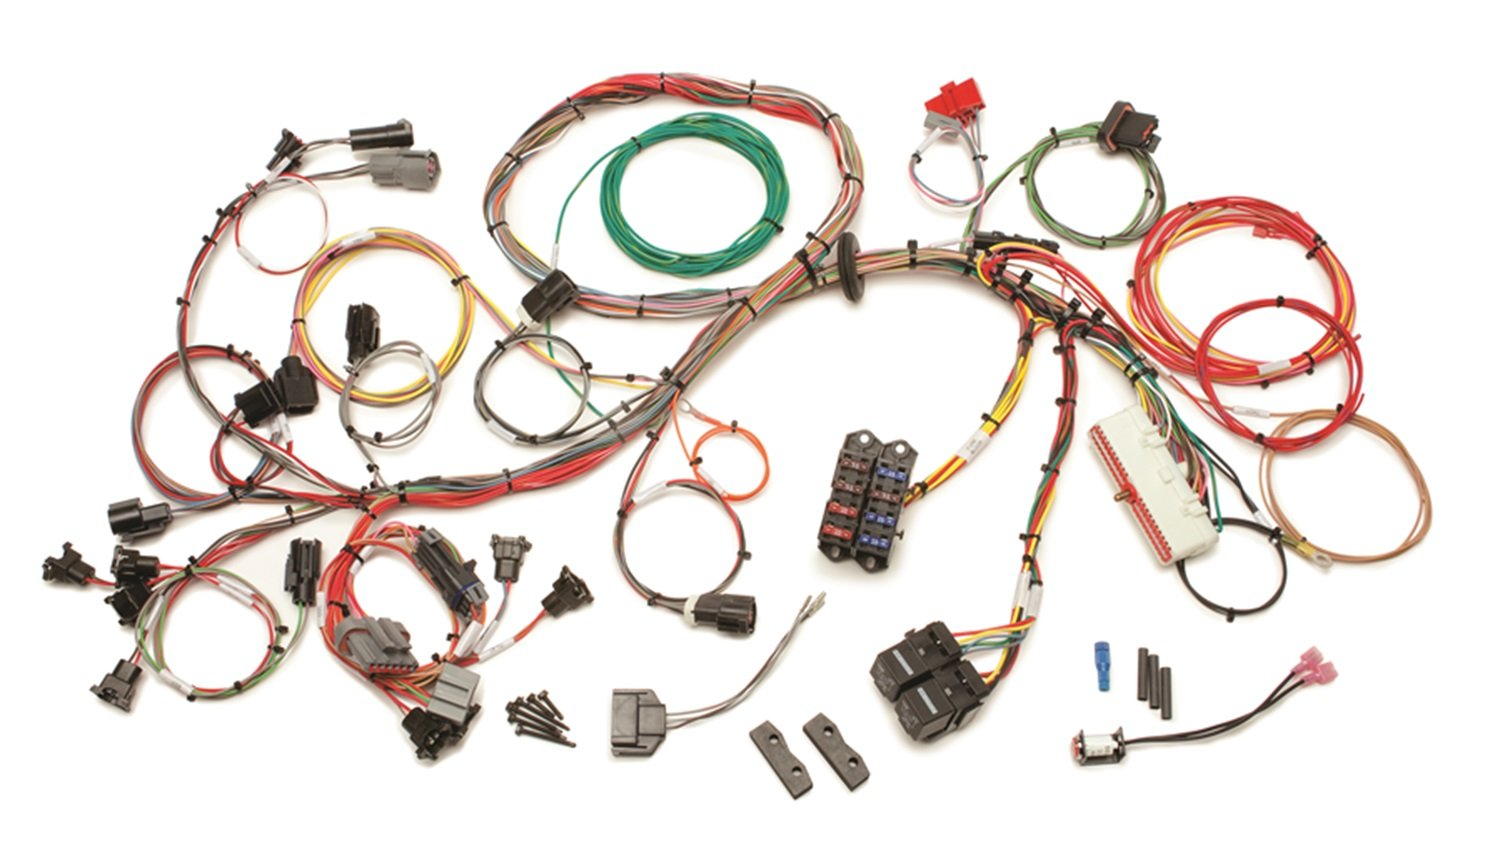 71UX1IBfleL._SL1500_ amazon com painless 60510 5 0l wiring harness automotive painless wiring harness at crackthecode.co